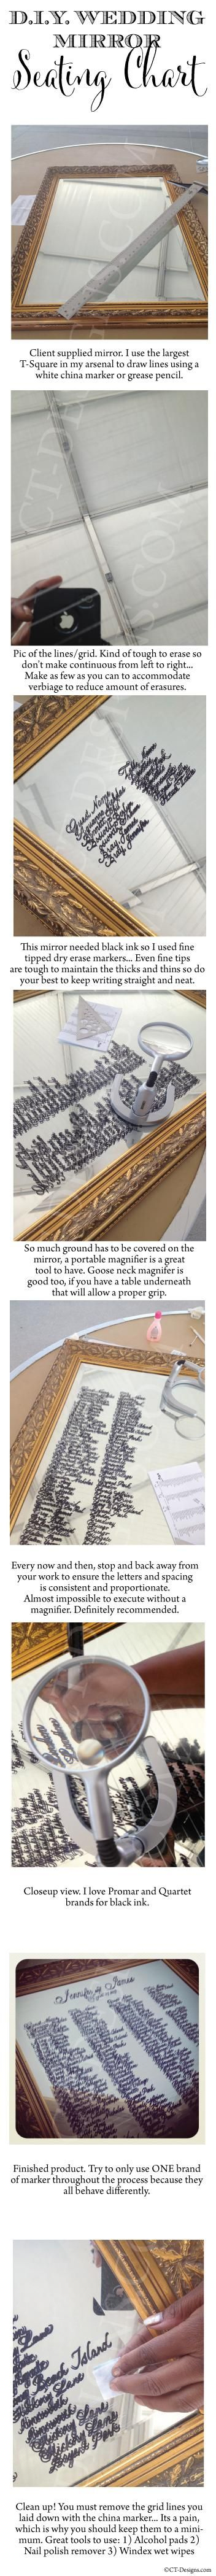 Wedding Mirror Seating Chart: Behind the Scenes